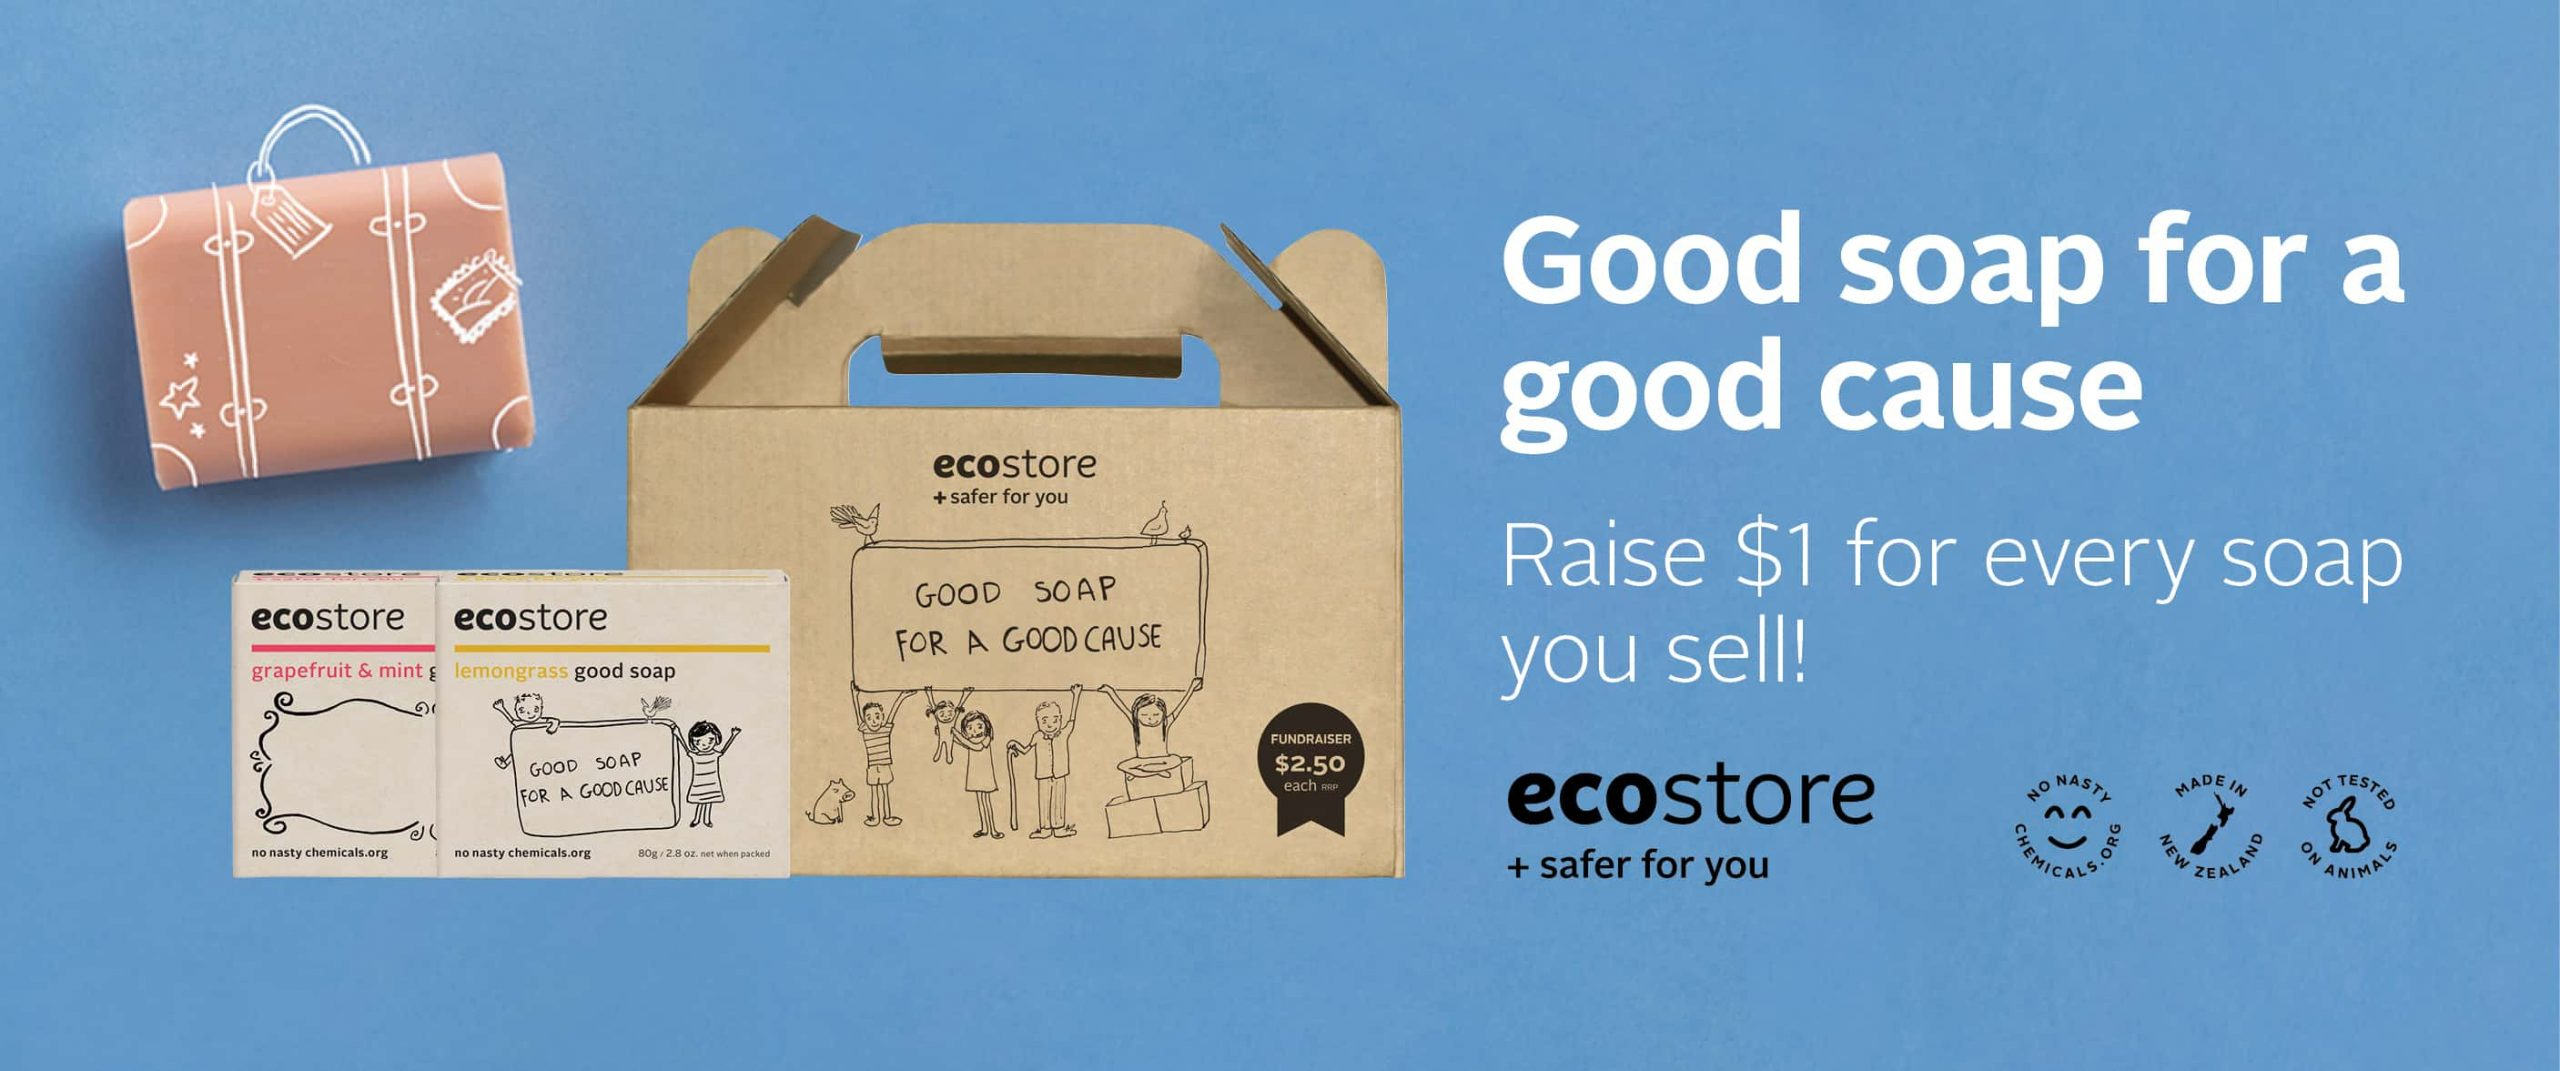 ecostore 'Good Soap' sale! – PTFA Fundraiser